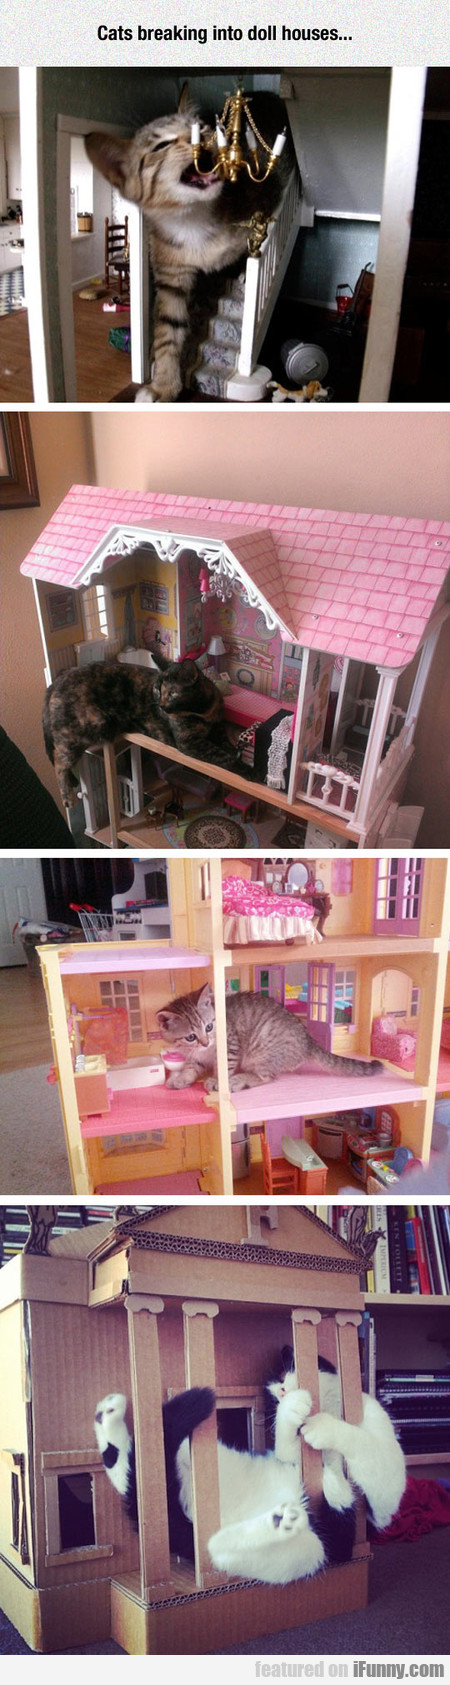 Cats Breaking Into Doll Houses